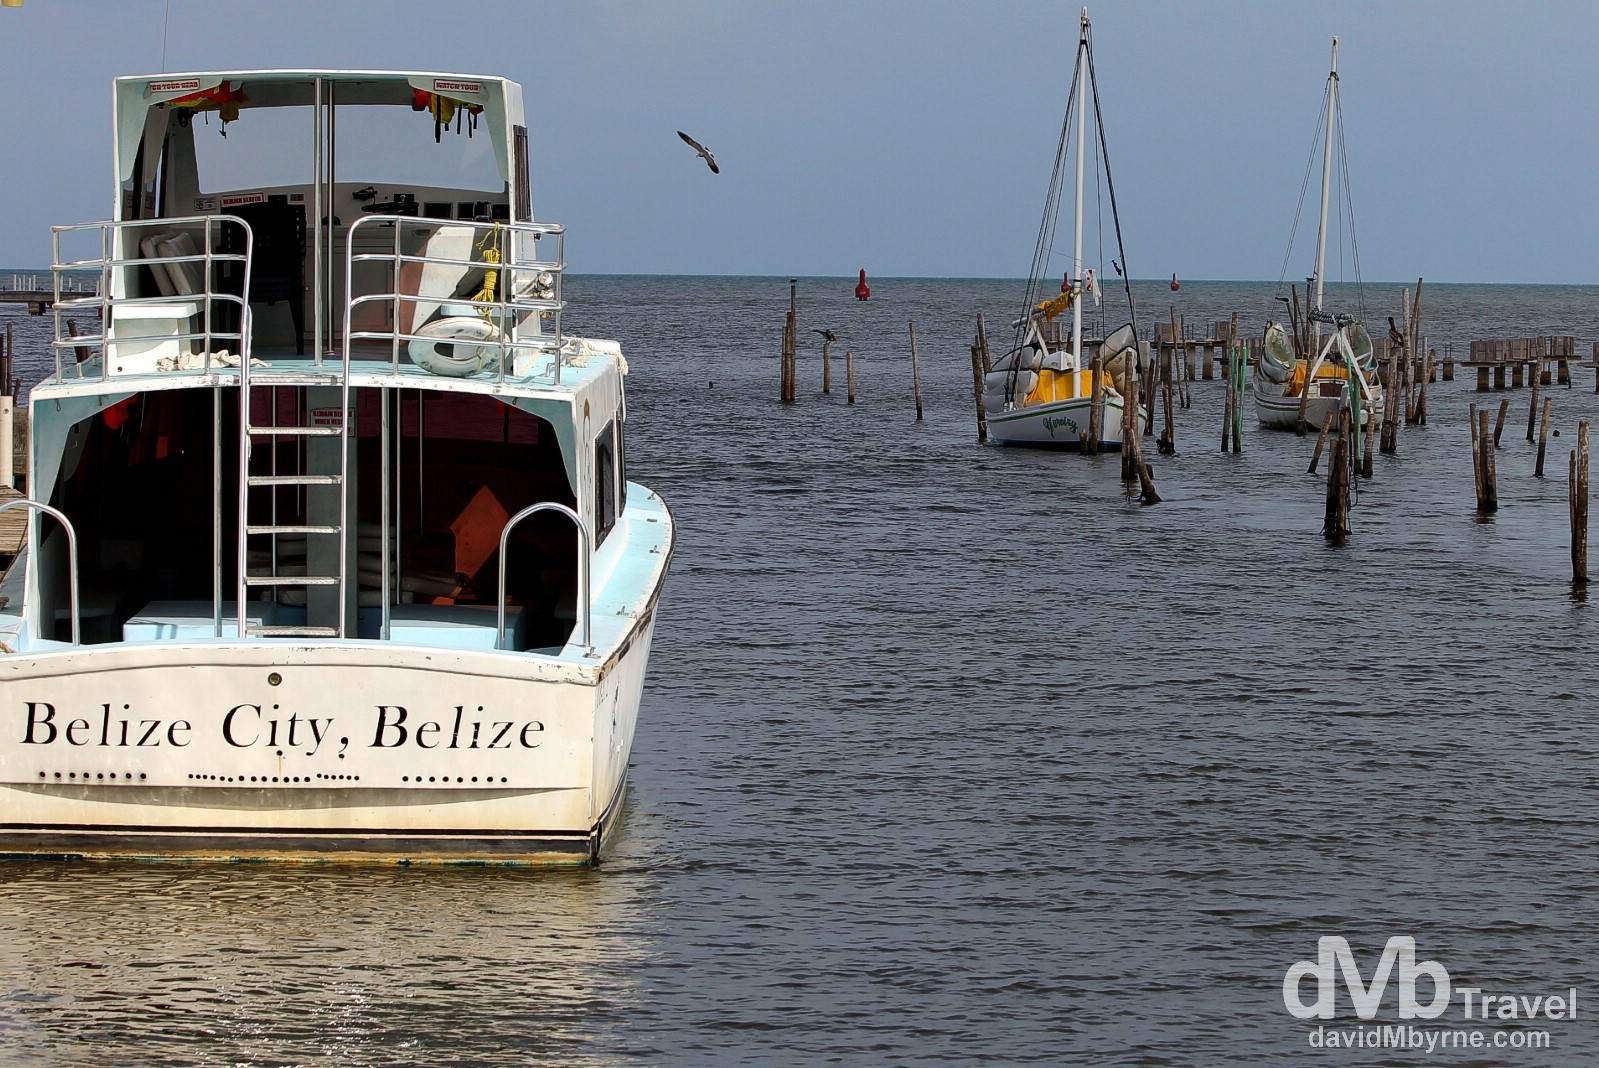 Boats in Haulover Creek, Belize City, Belize. May 12th 2013.